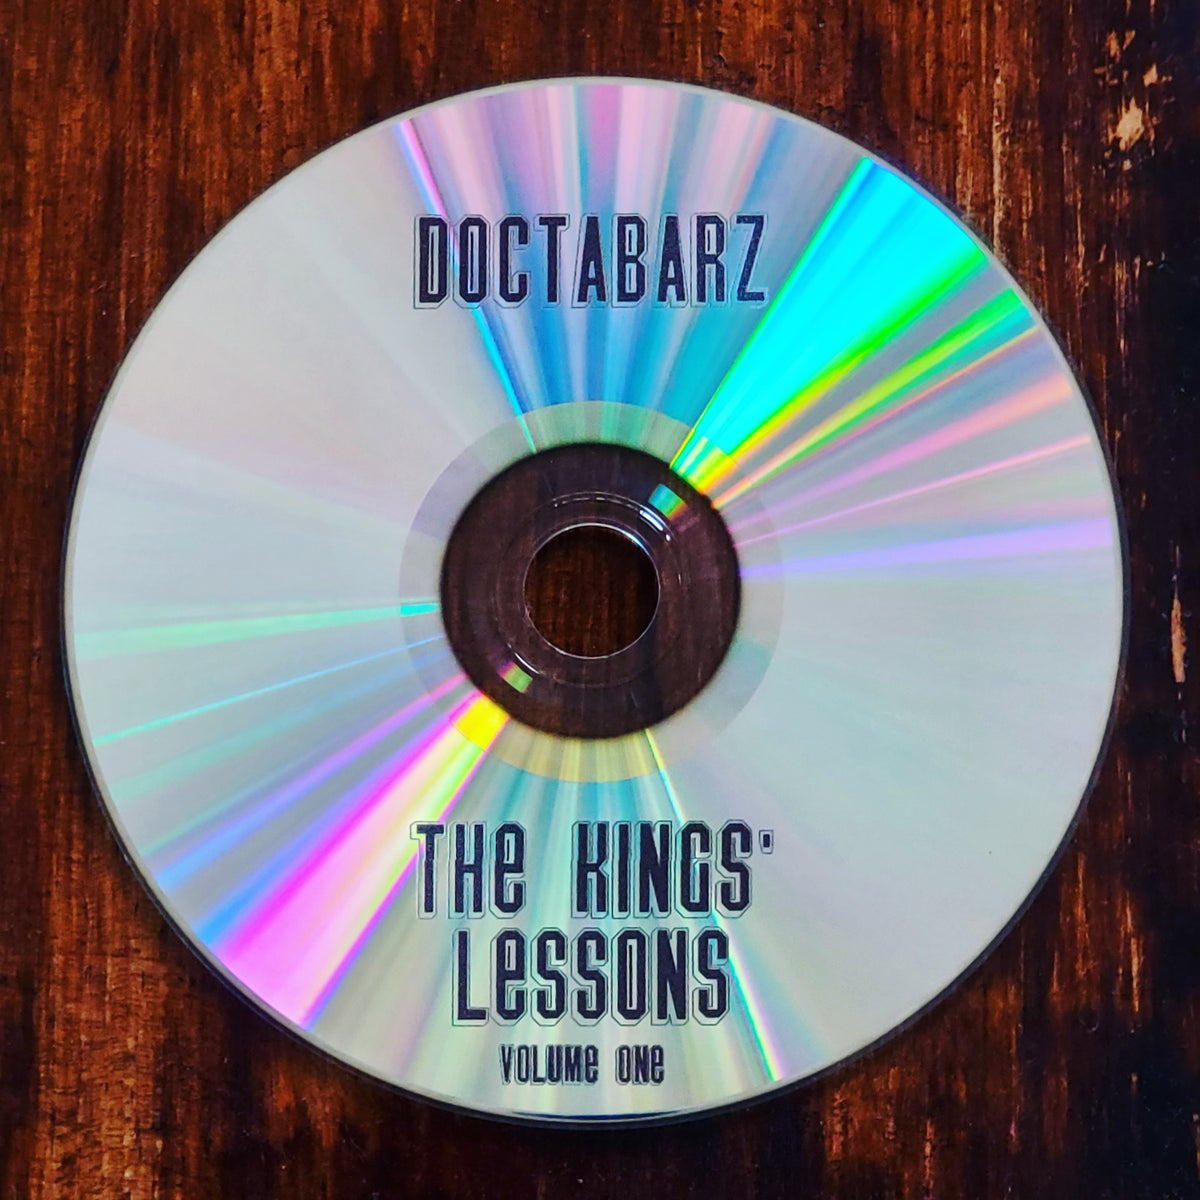 Image of Doctabarz - The Kings' Lessons Volume One CD